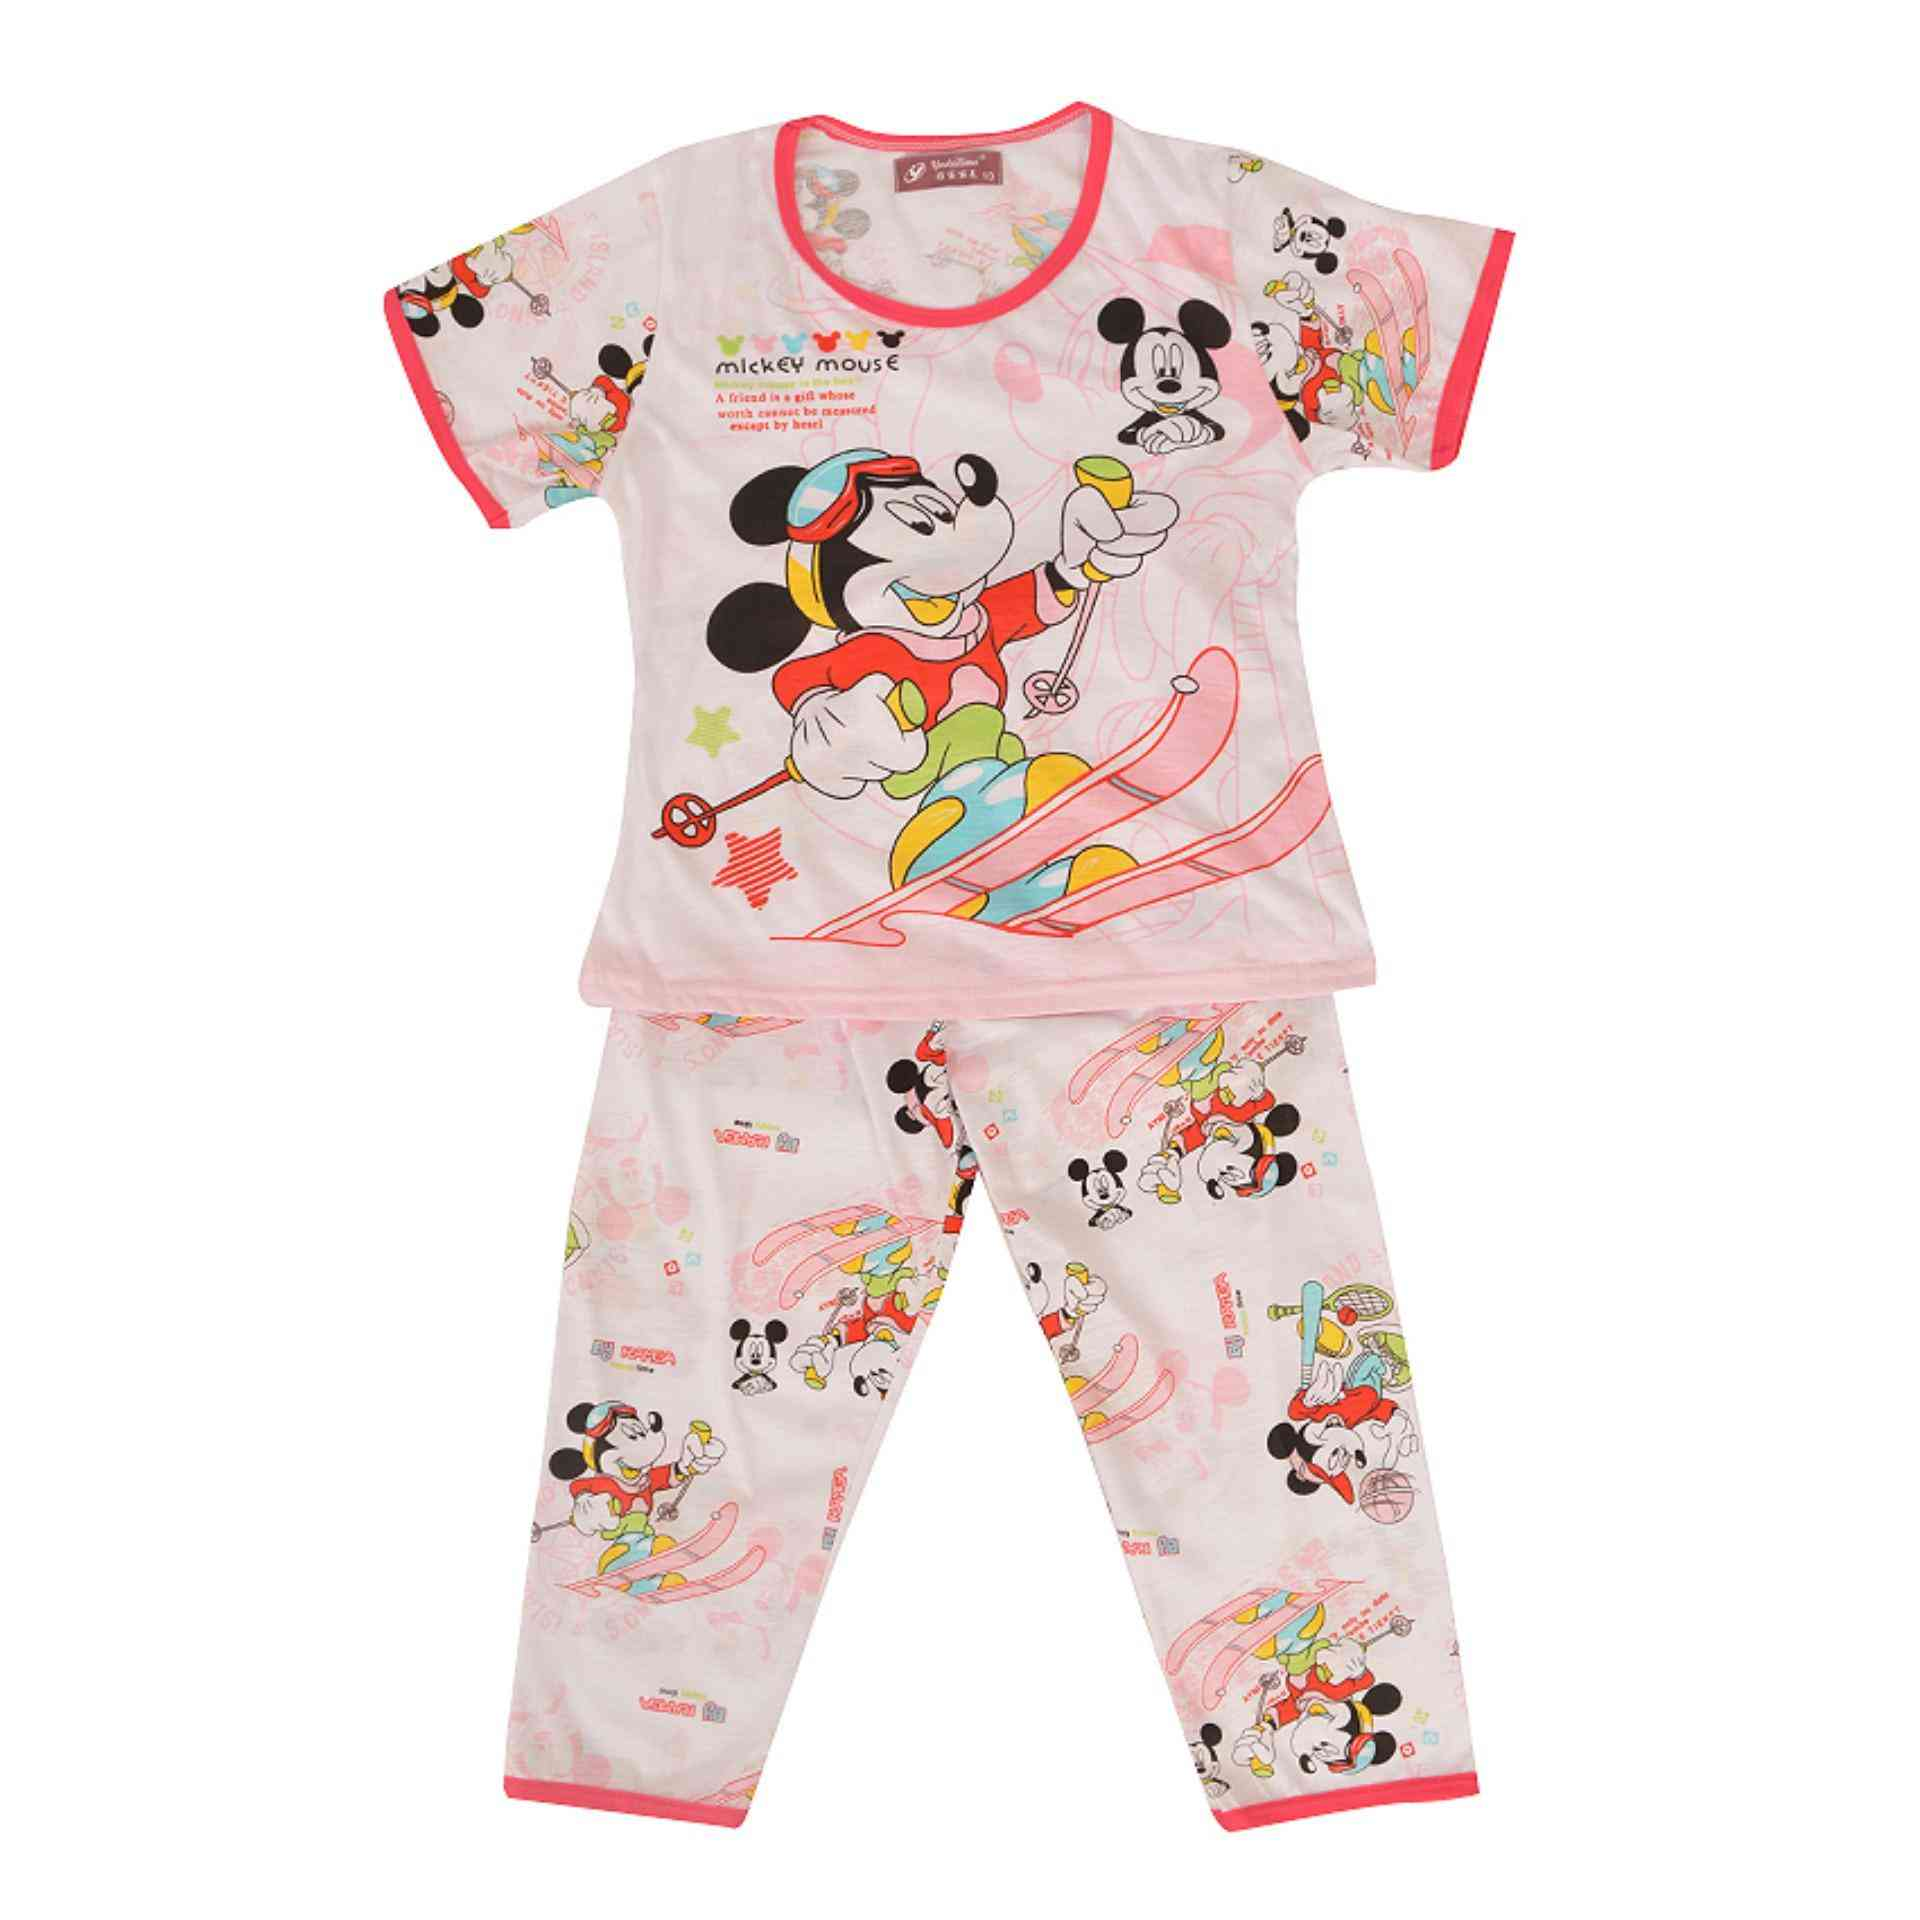 Pack of 2 Pure Cotton Night Suit (Pajama + Tshirt) for Girls - Minnie Mouse